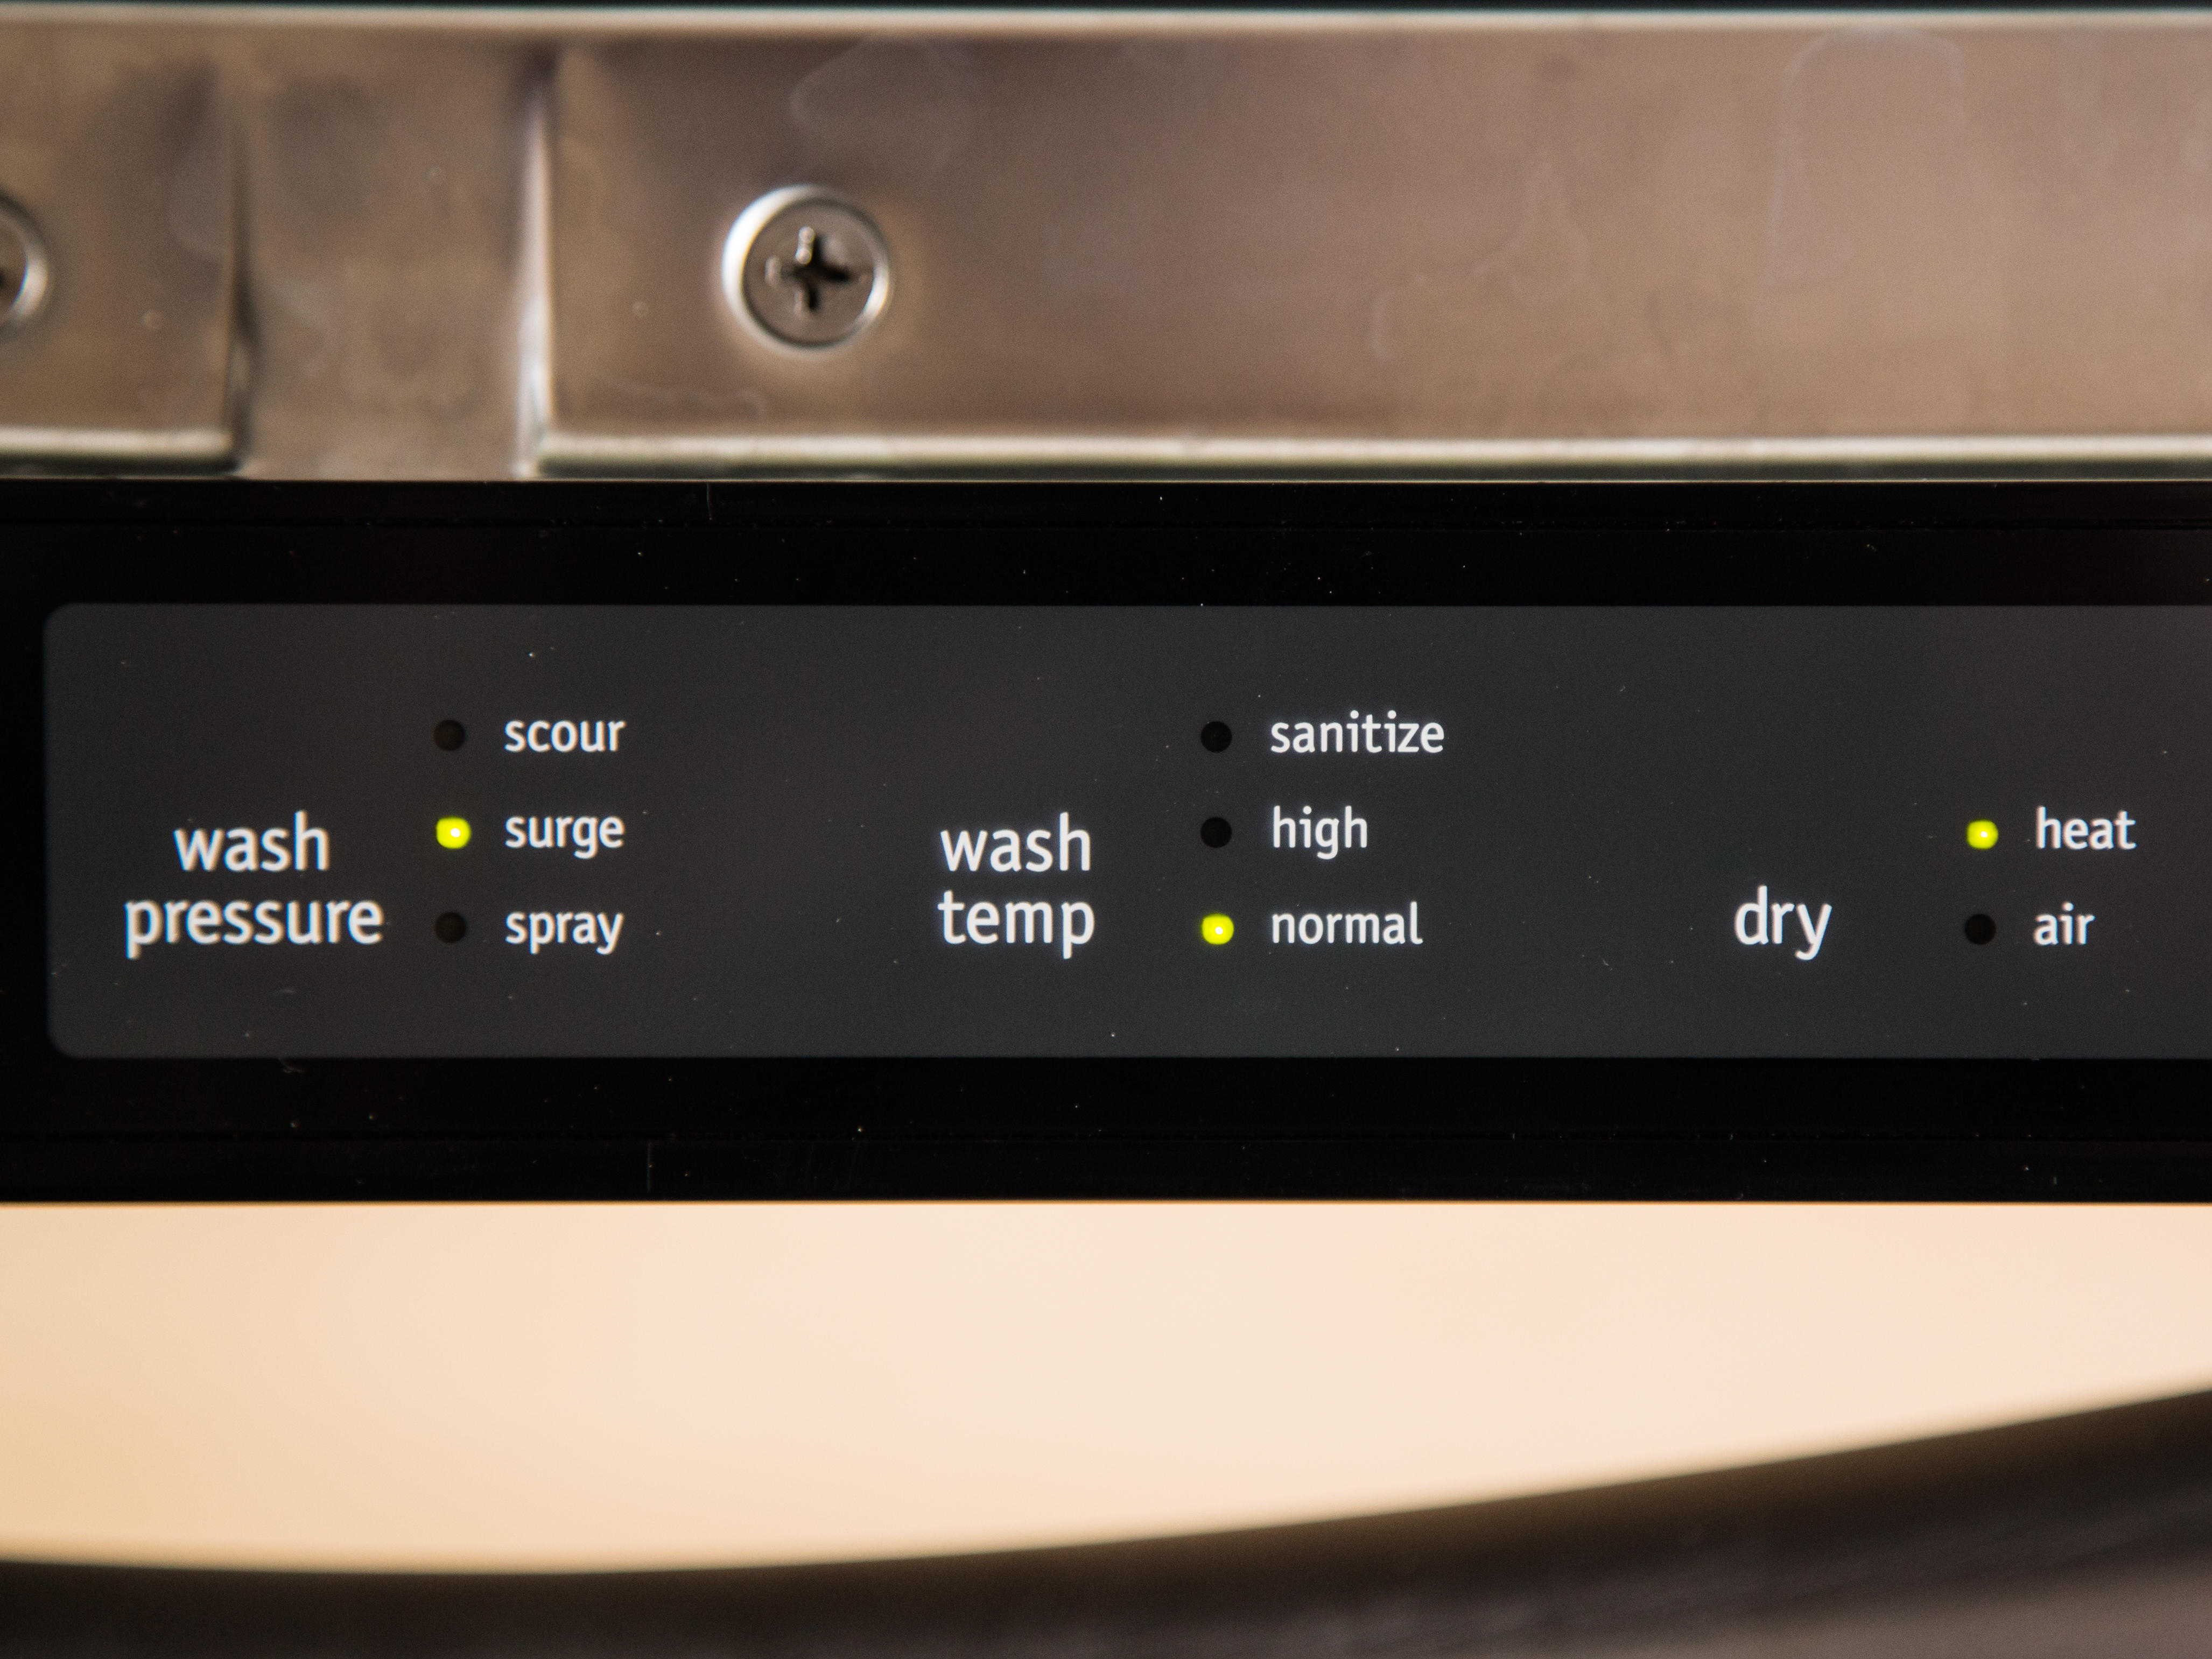 Air-dry your dishes